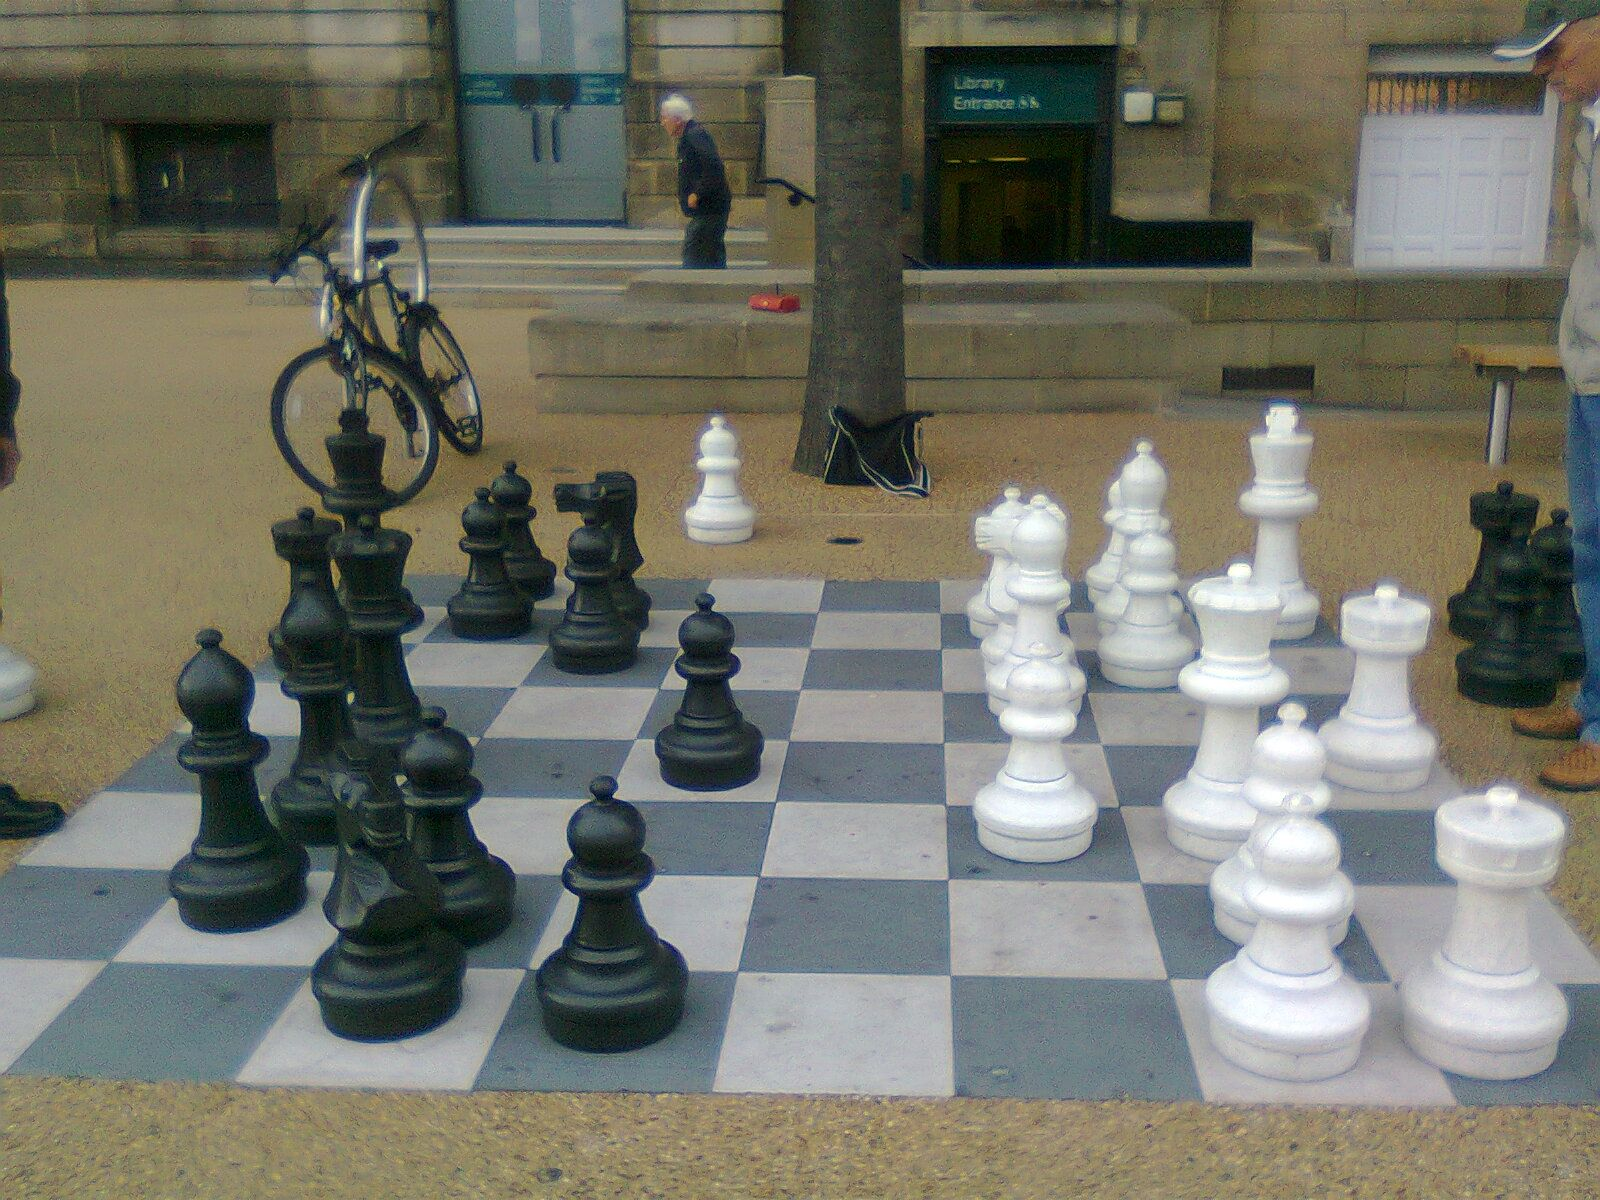 Life-sized Chess Board off the Headrow, Leeds